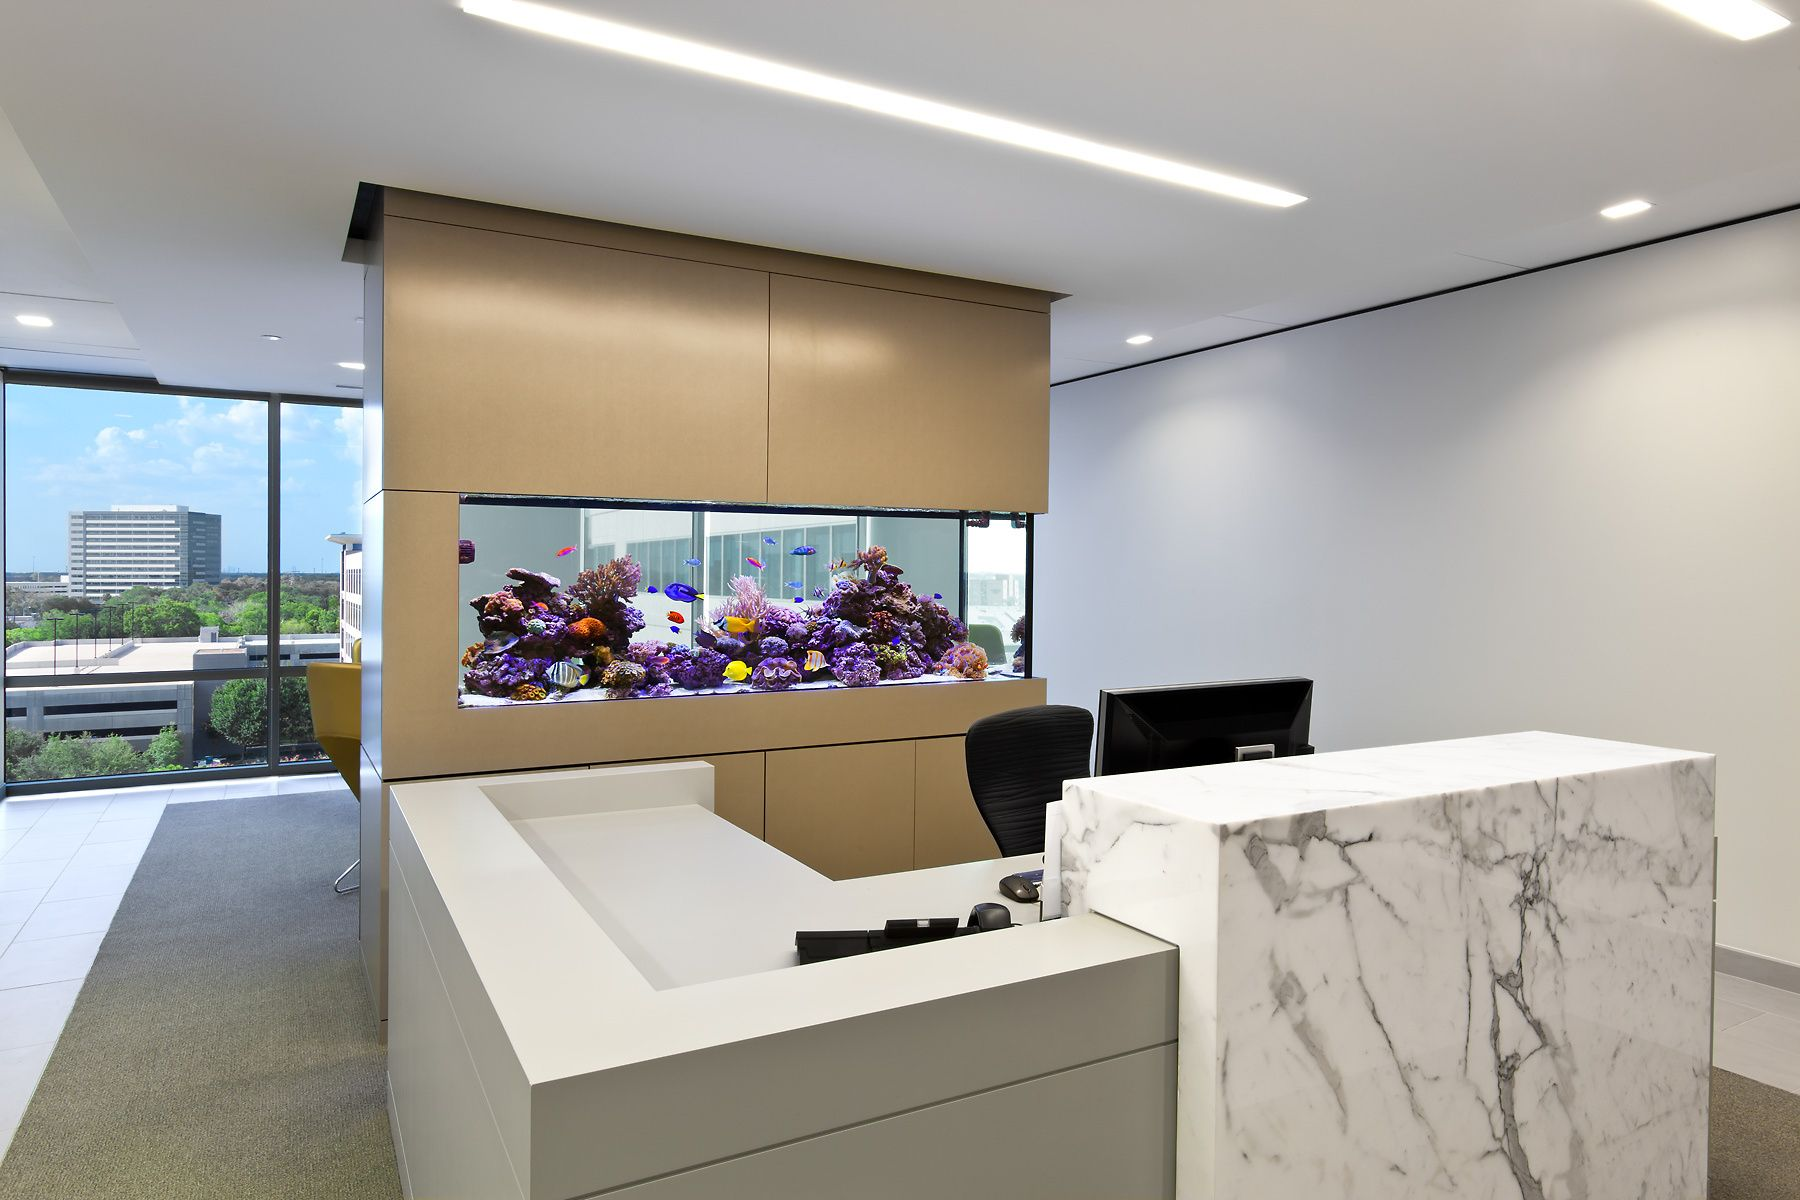 A Custom Reef Aquarium in a Commercial Space